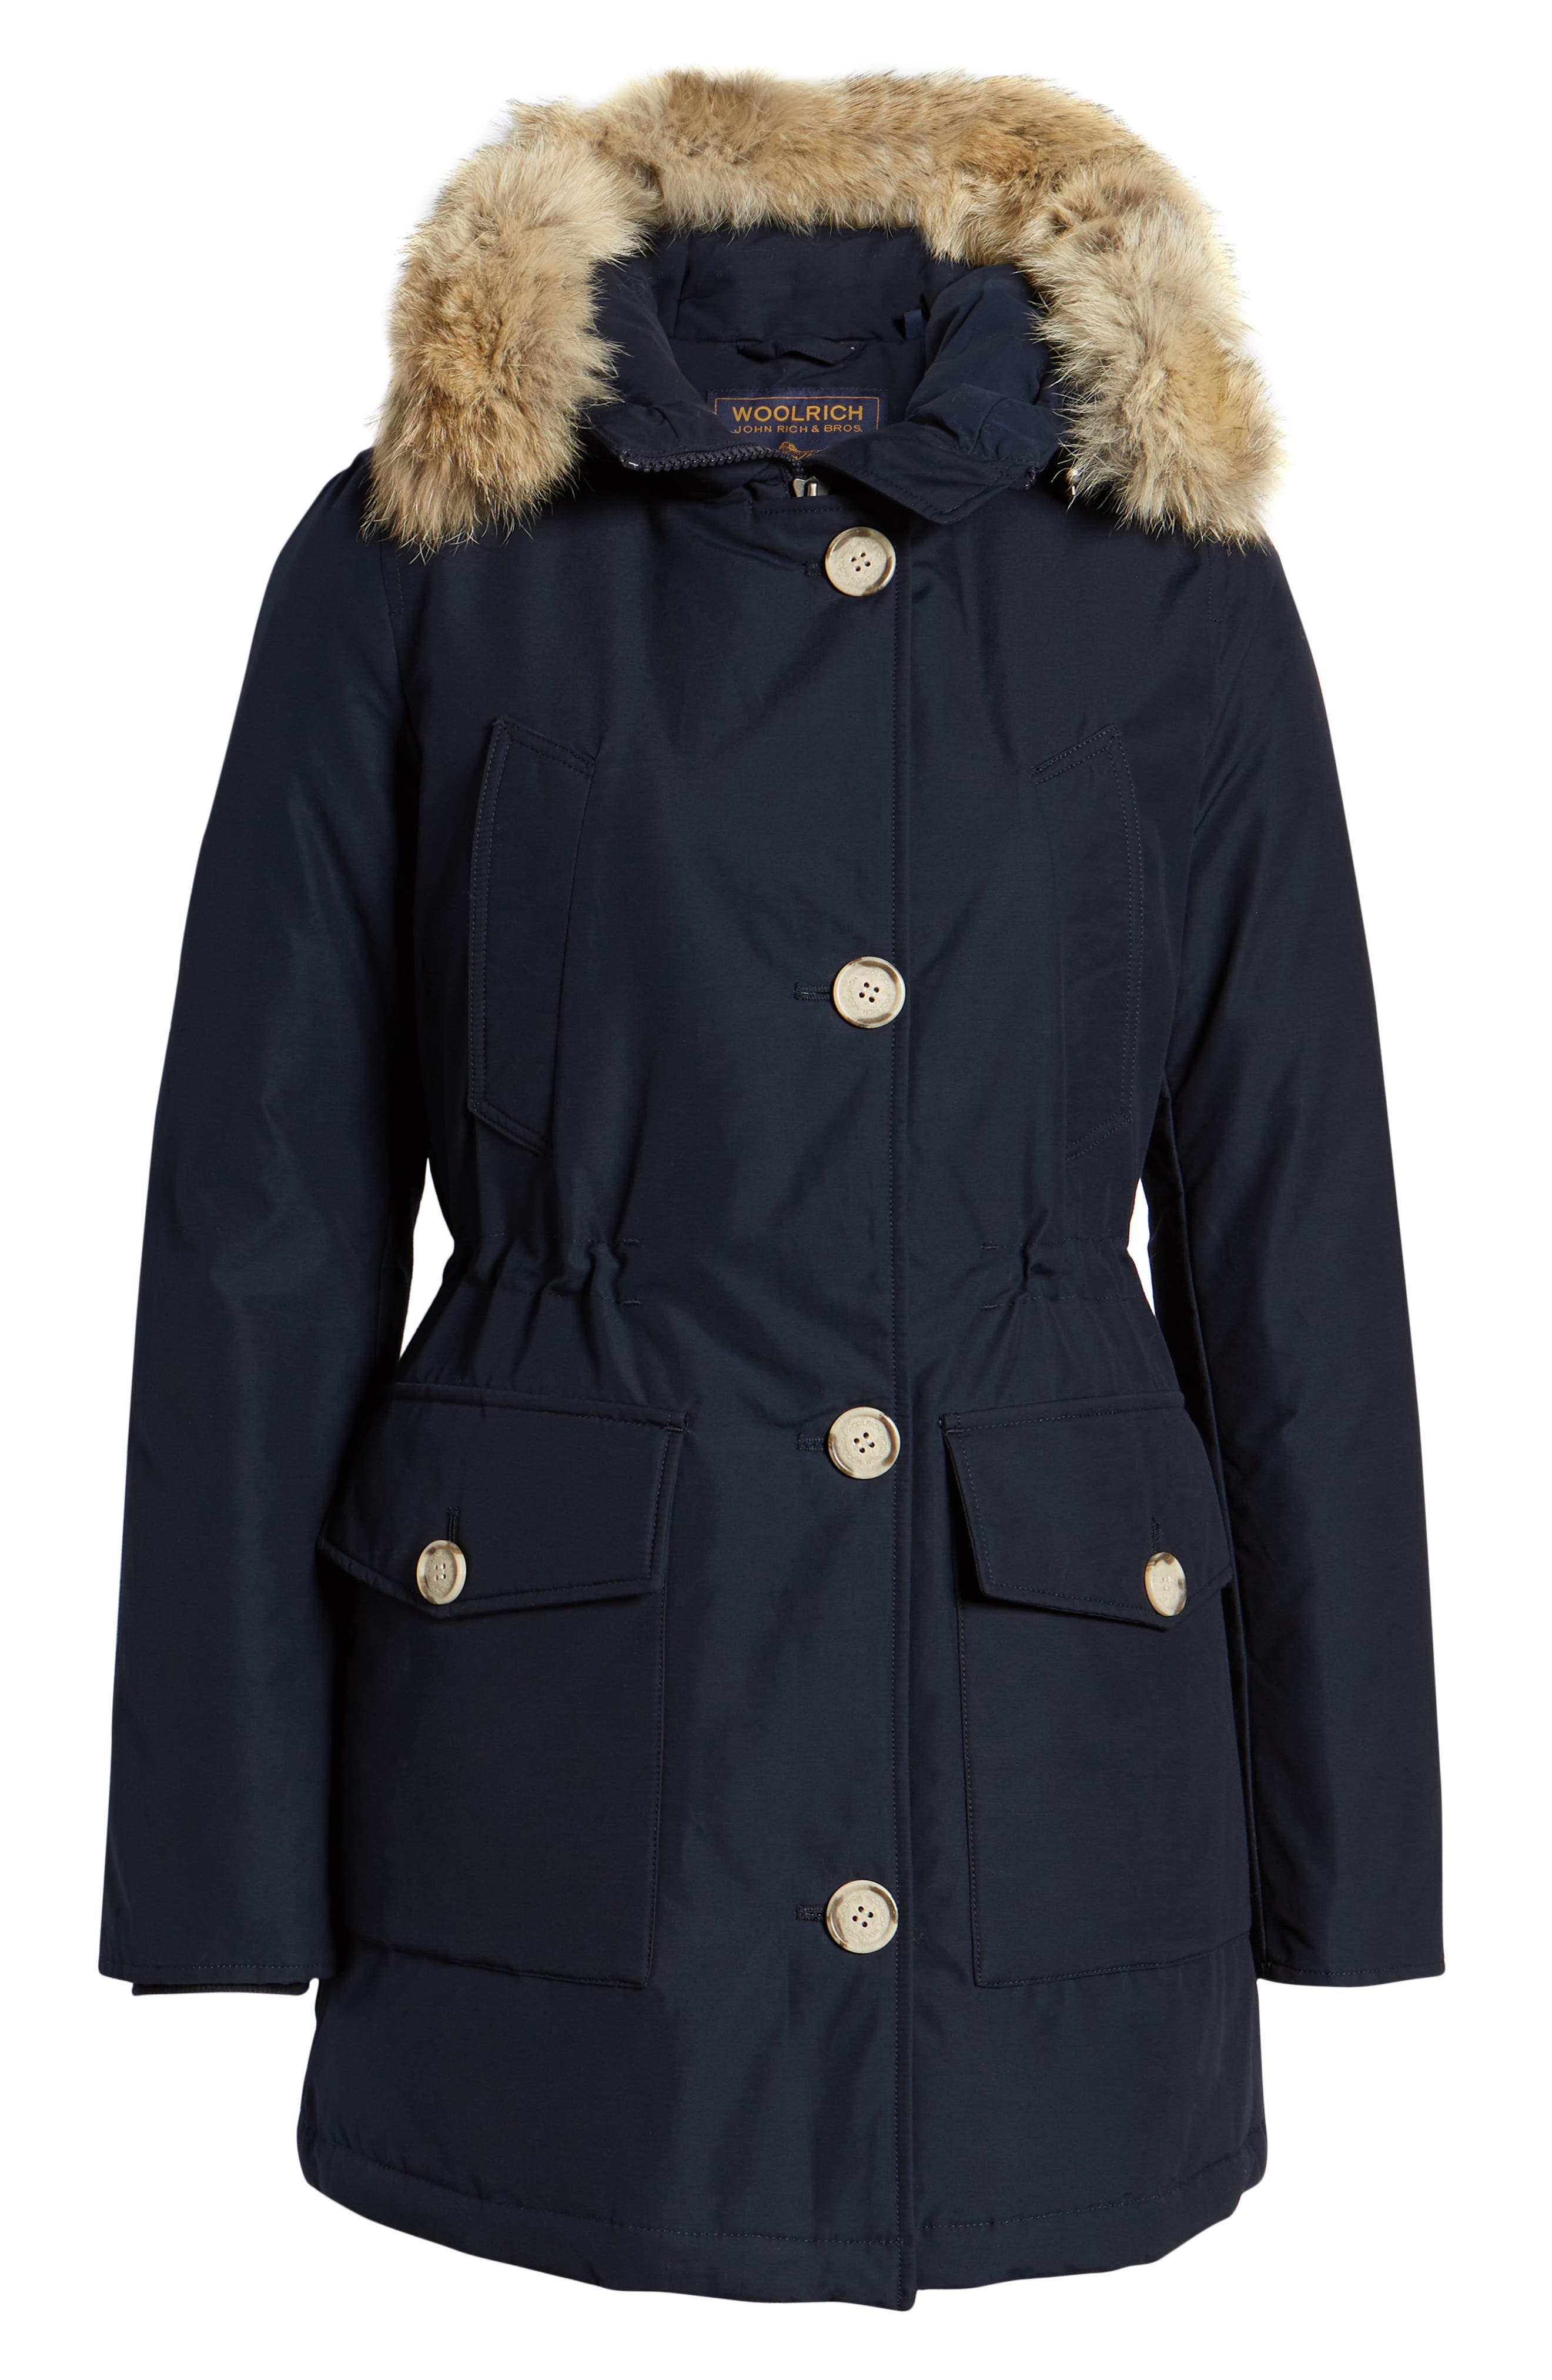 WOOLRICH,                             'Arctic' Water Resistant 550-Fill Power Down Parka with Genuine Coyote Fur Trim,                             Alternate thumbnail 6, color,                             400